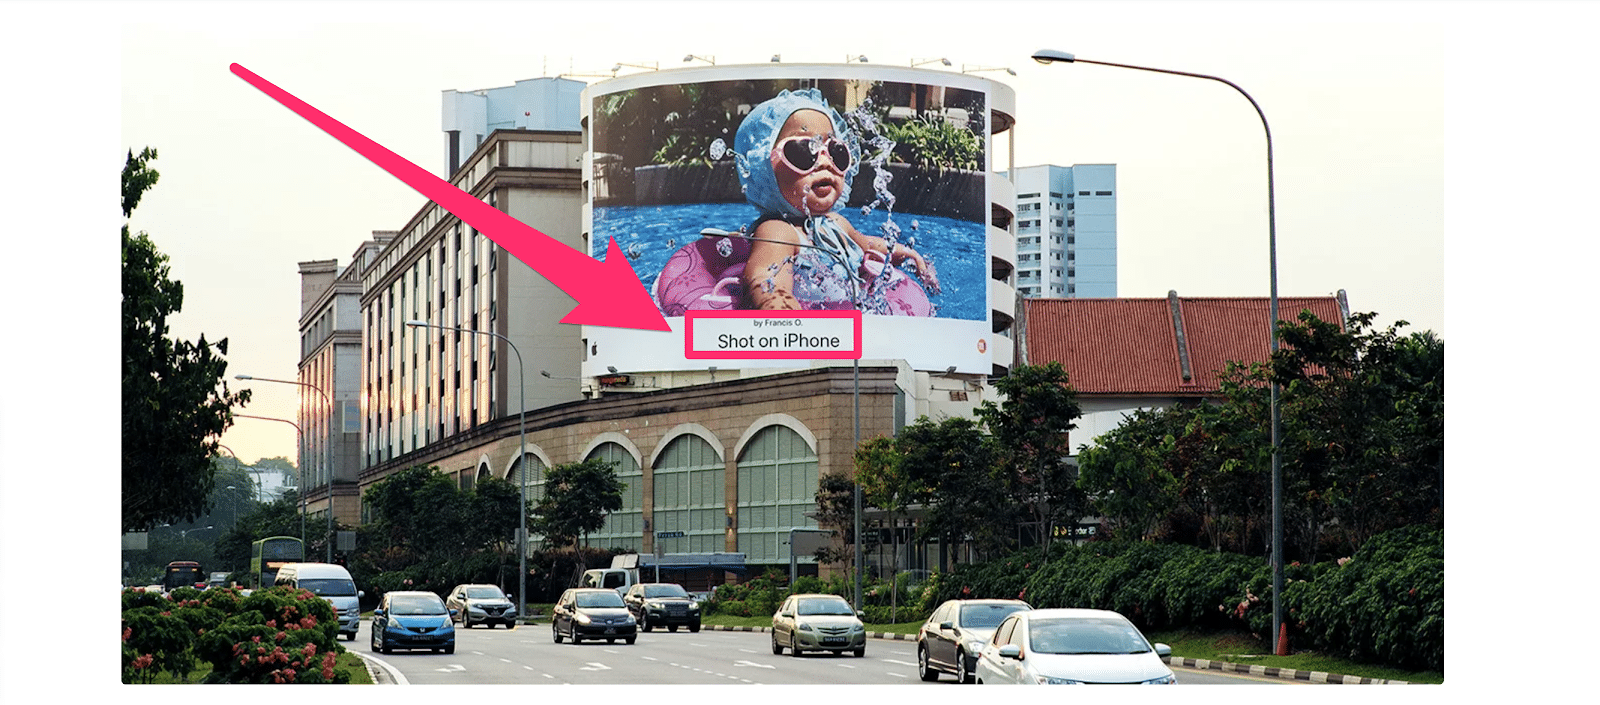 billboard display featuring apples shot on iphone campaign